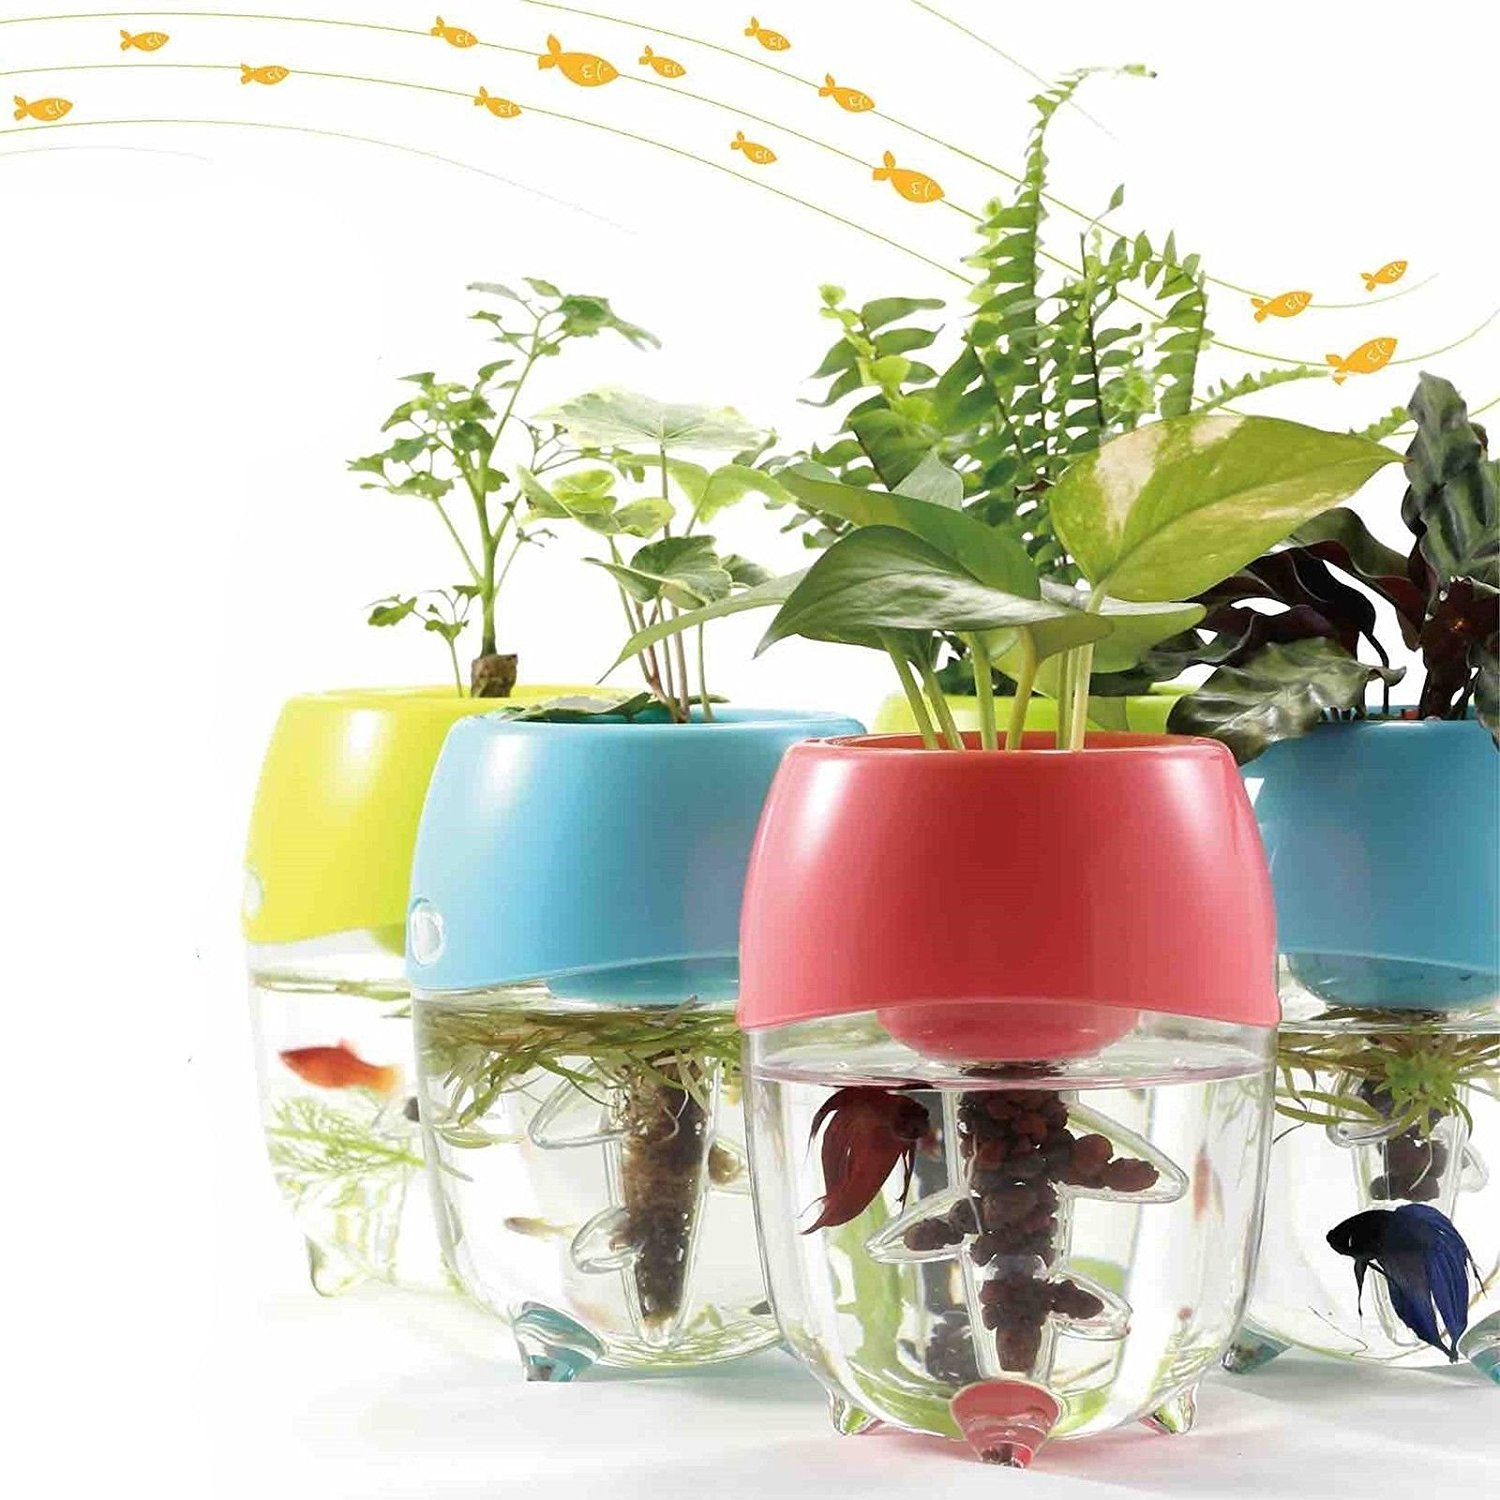 Self Cleaning Fish Tank Garden Amazoncom Back To The Roots Water Garden Amazon Launchpad